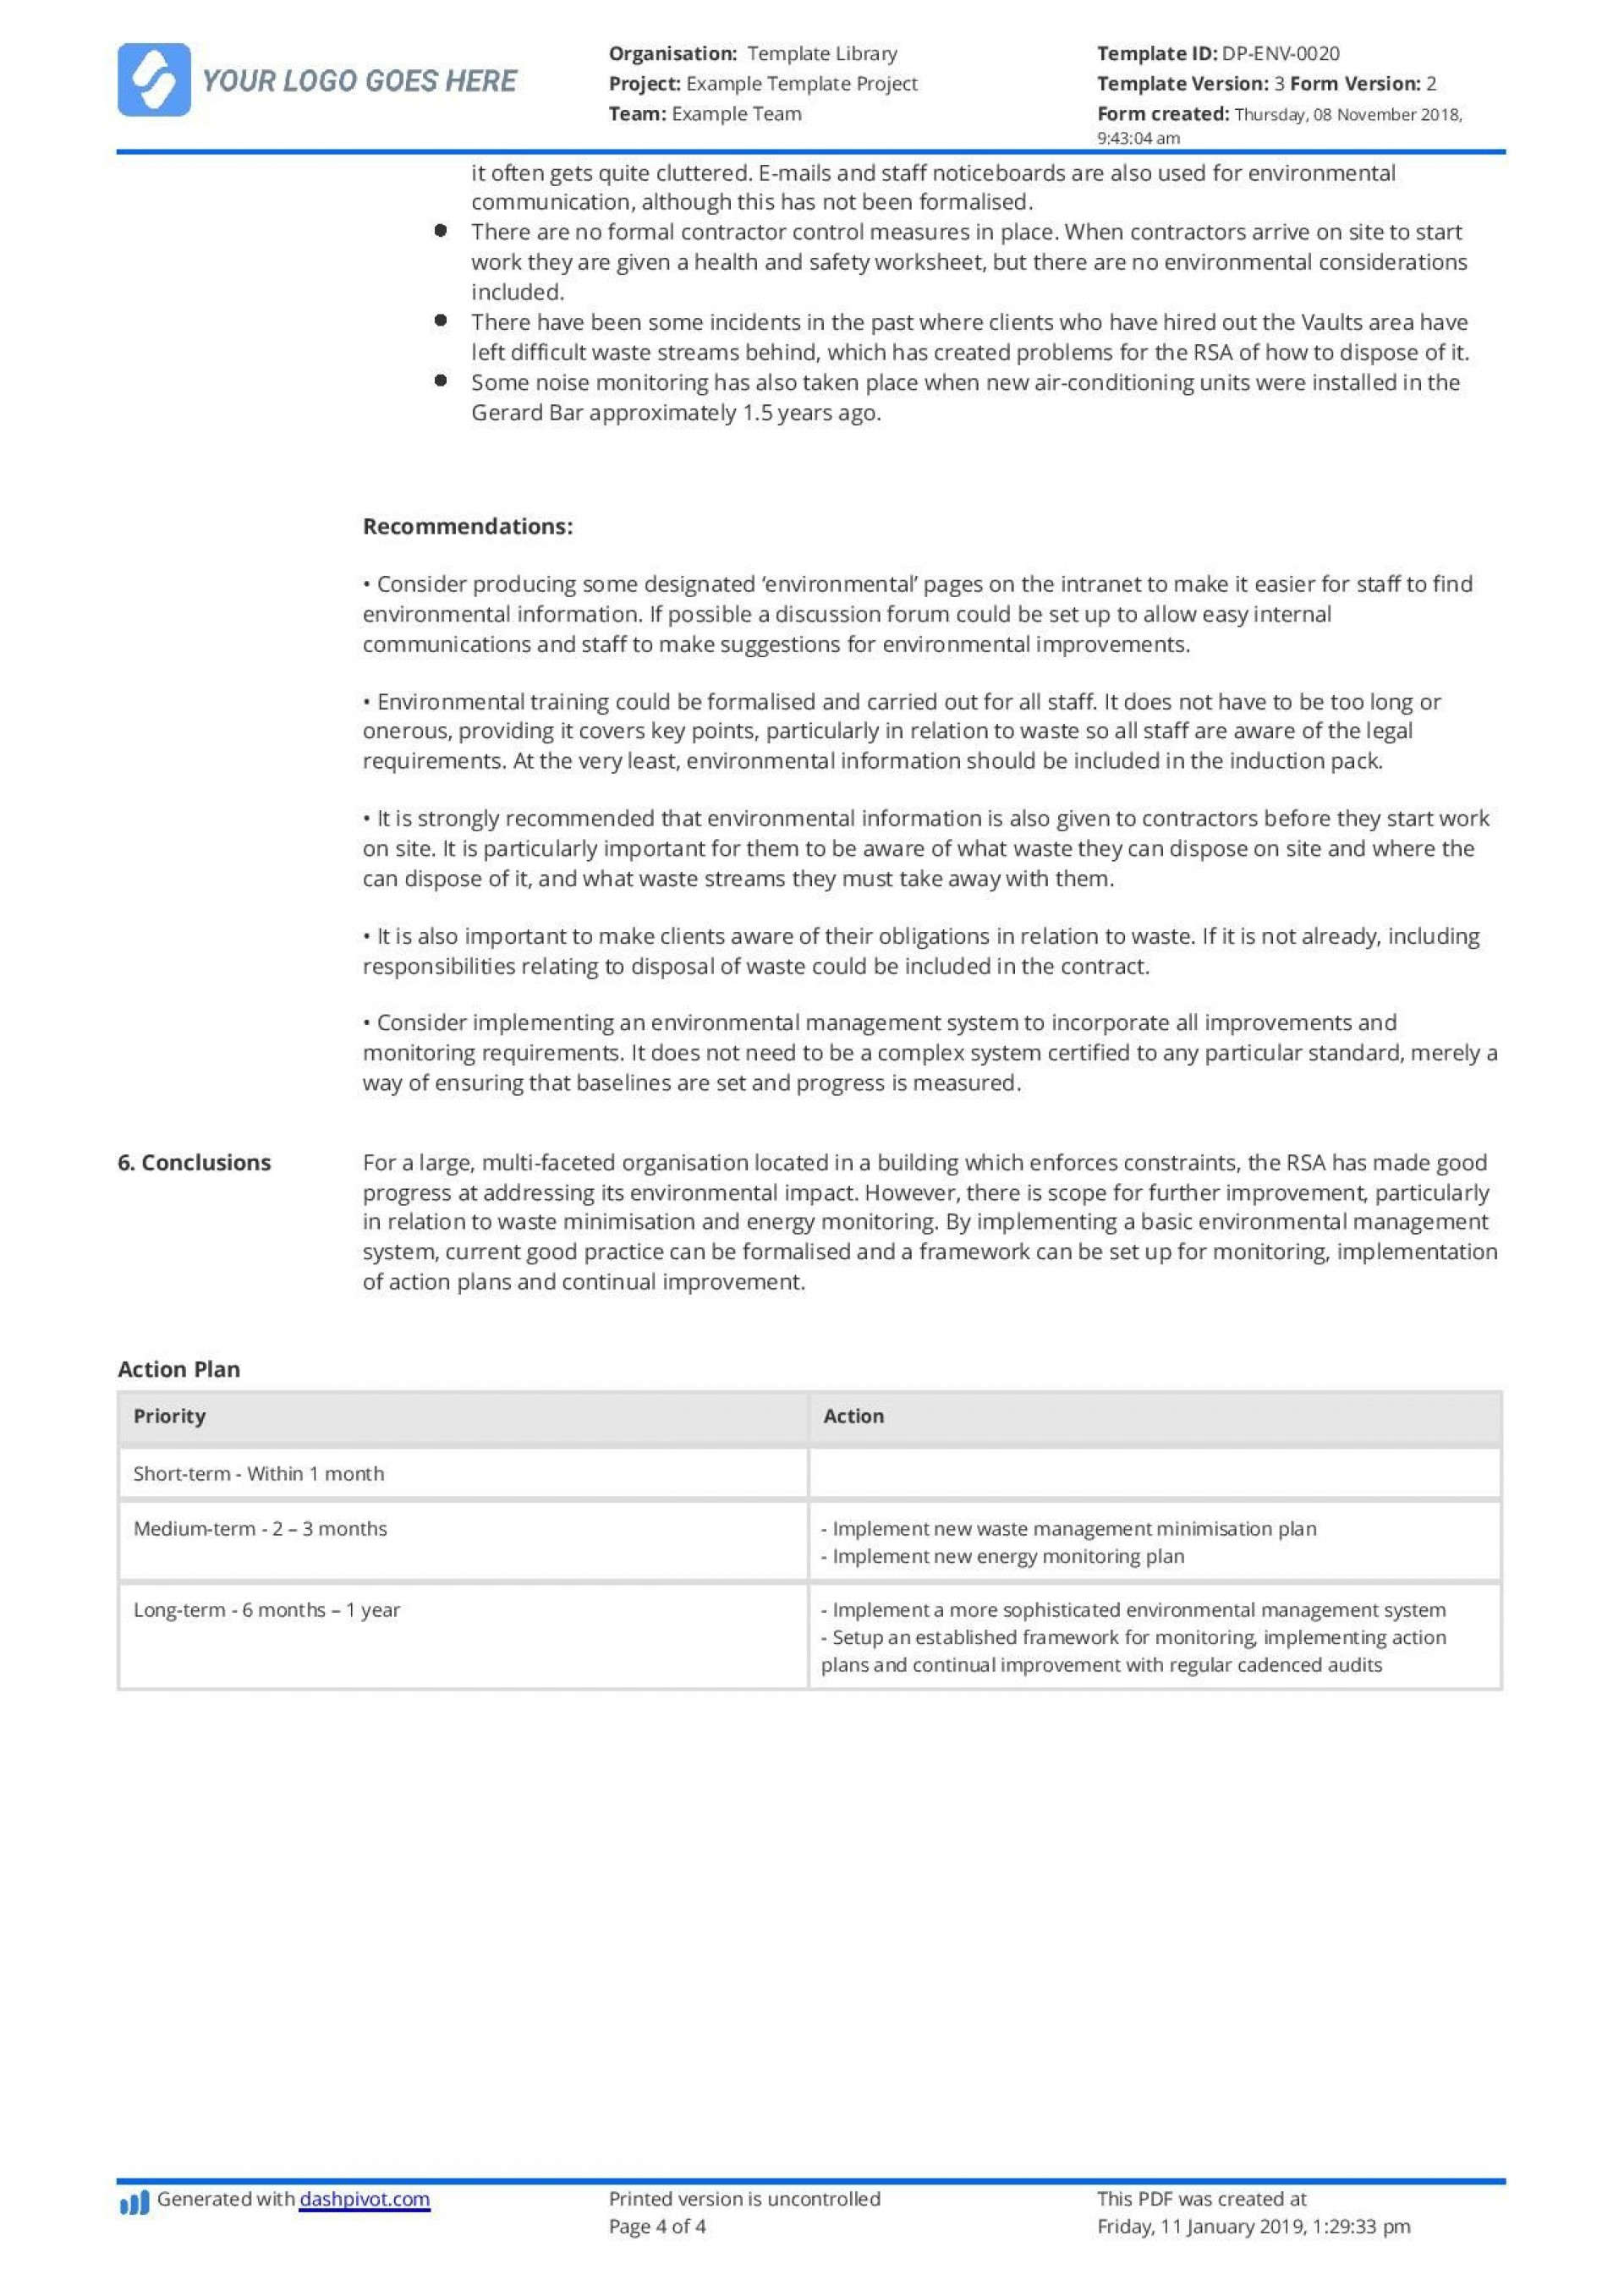 003 Amazing Internal Audit Report Template High Def  Powerpoint Format In Word Download Free1920